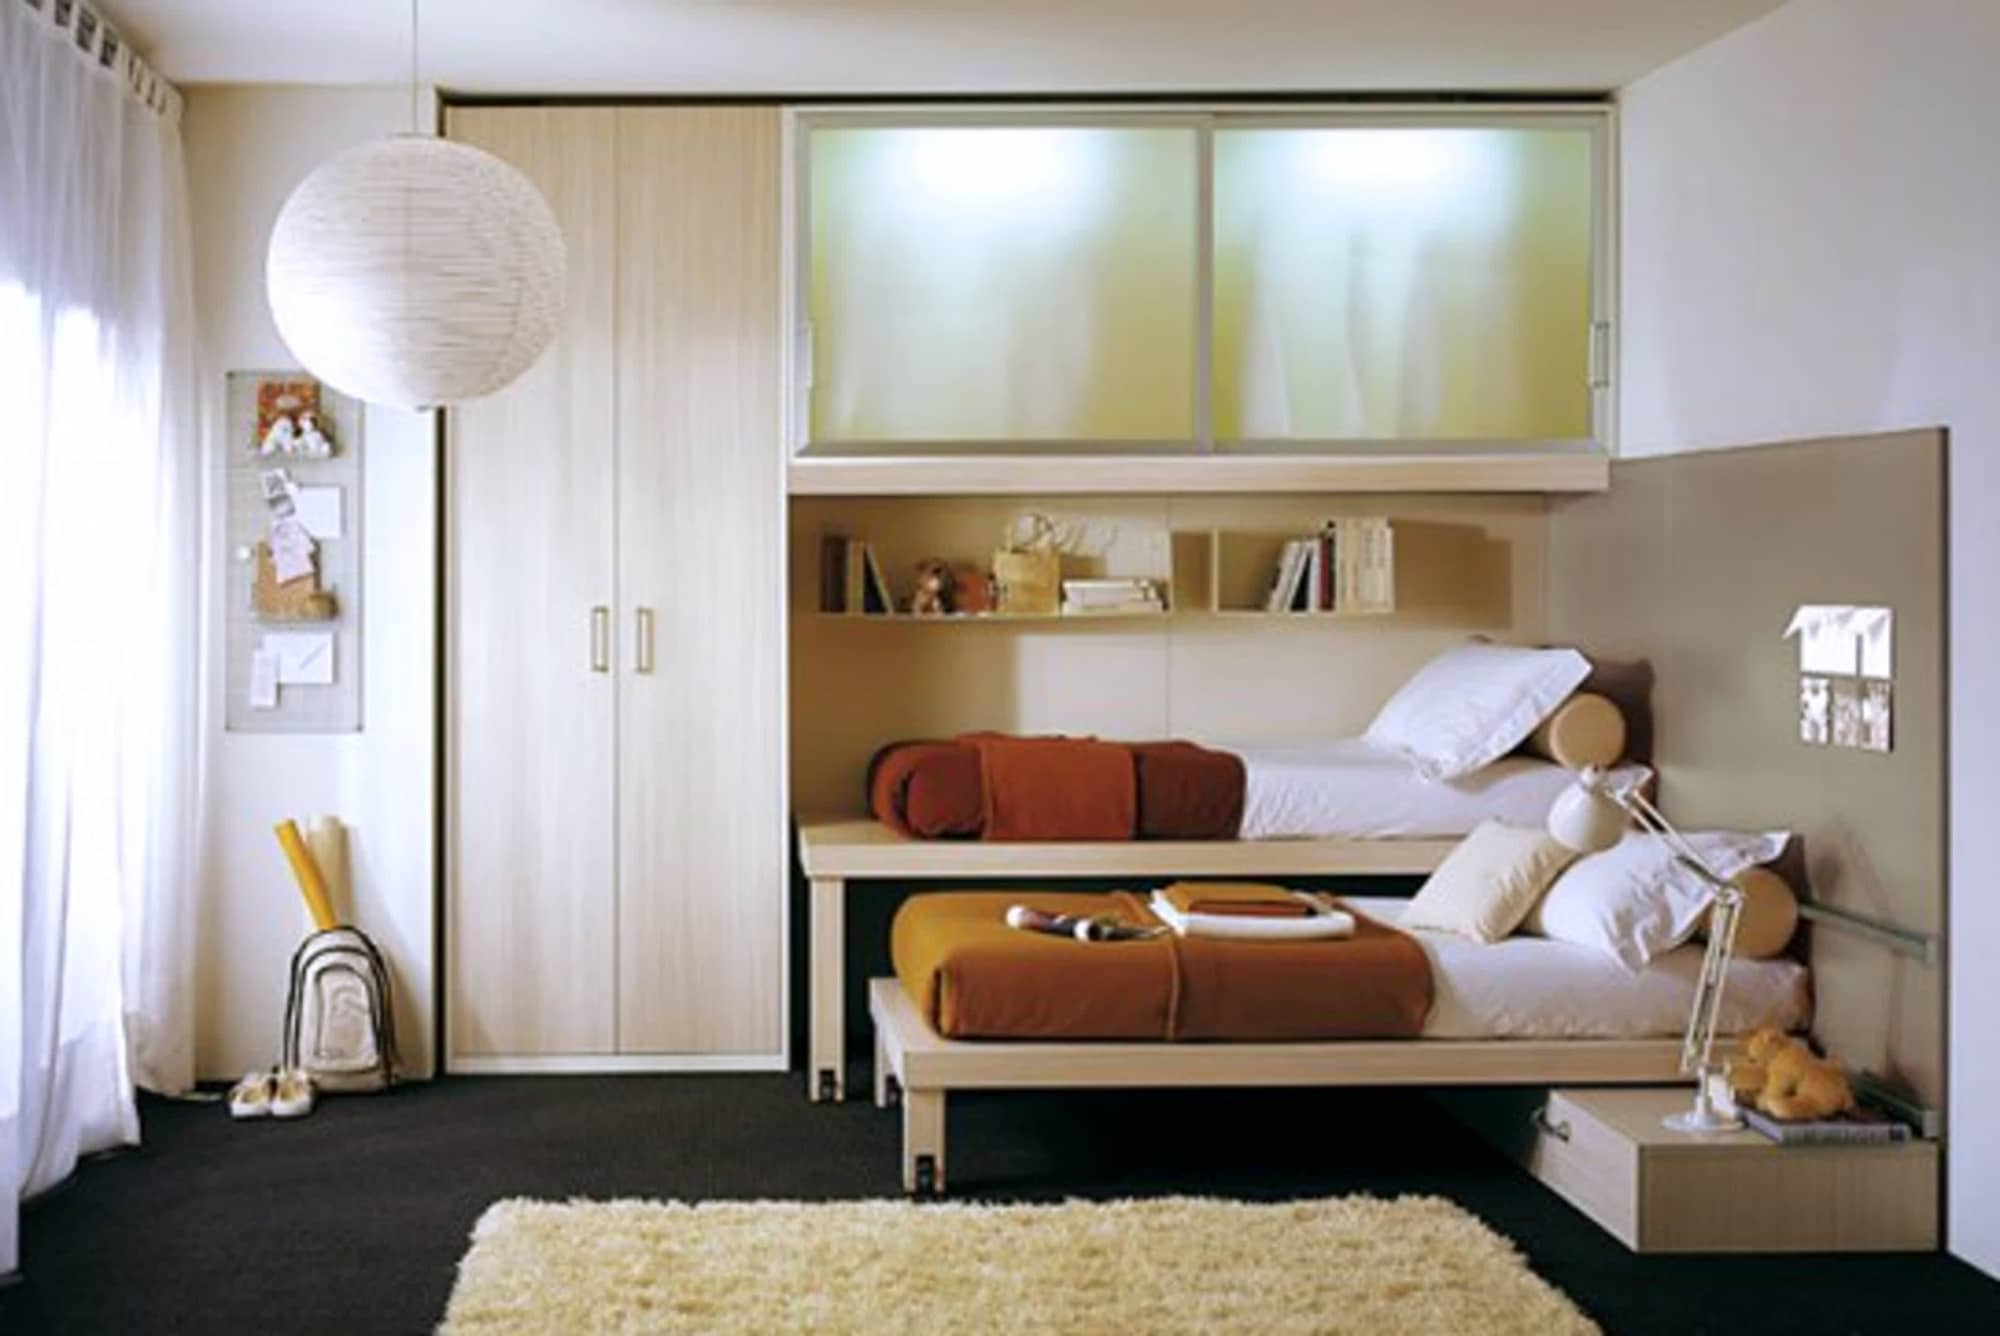 Small Bedroom Design Ideas Make Most Your Space House Plans 143900